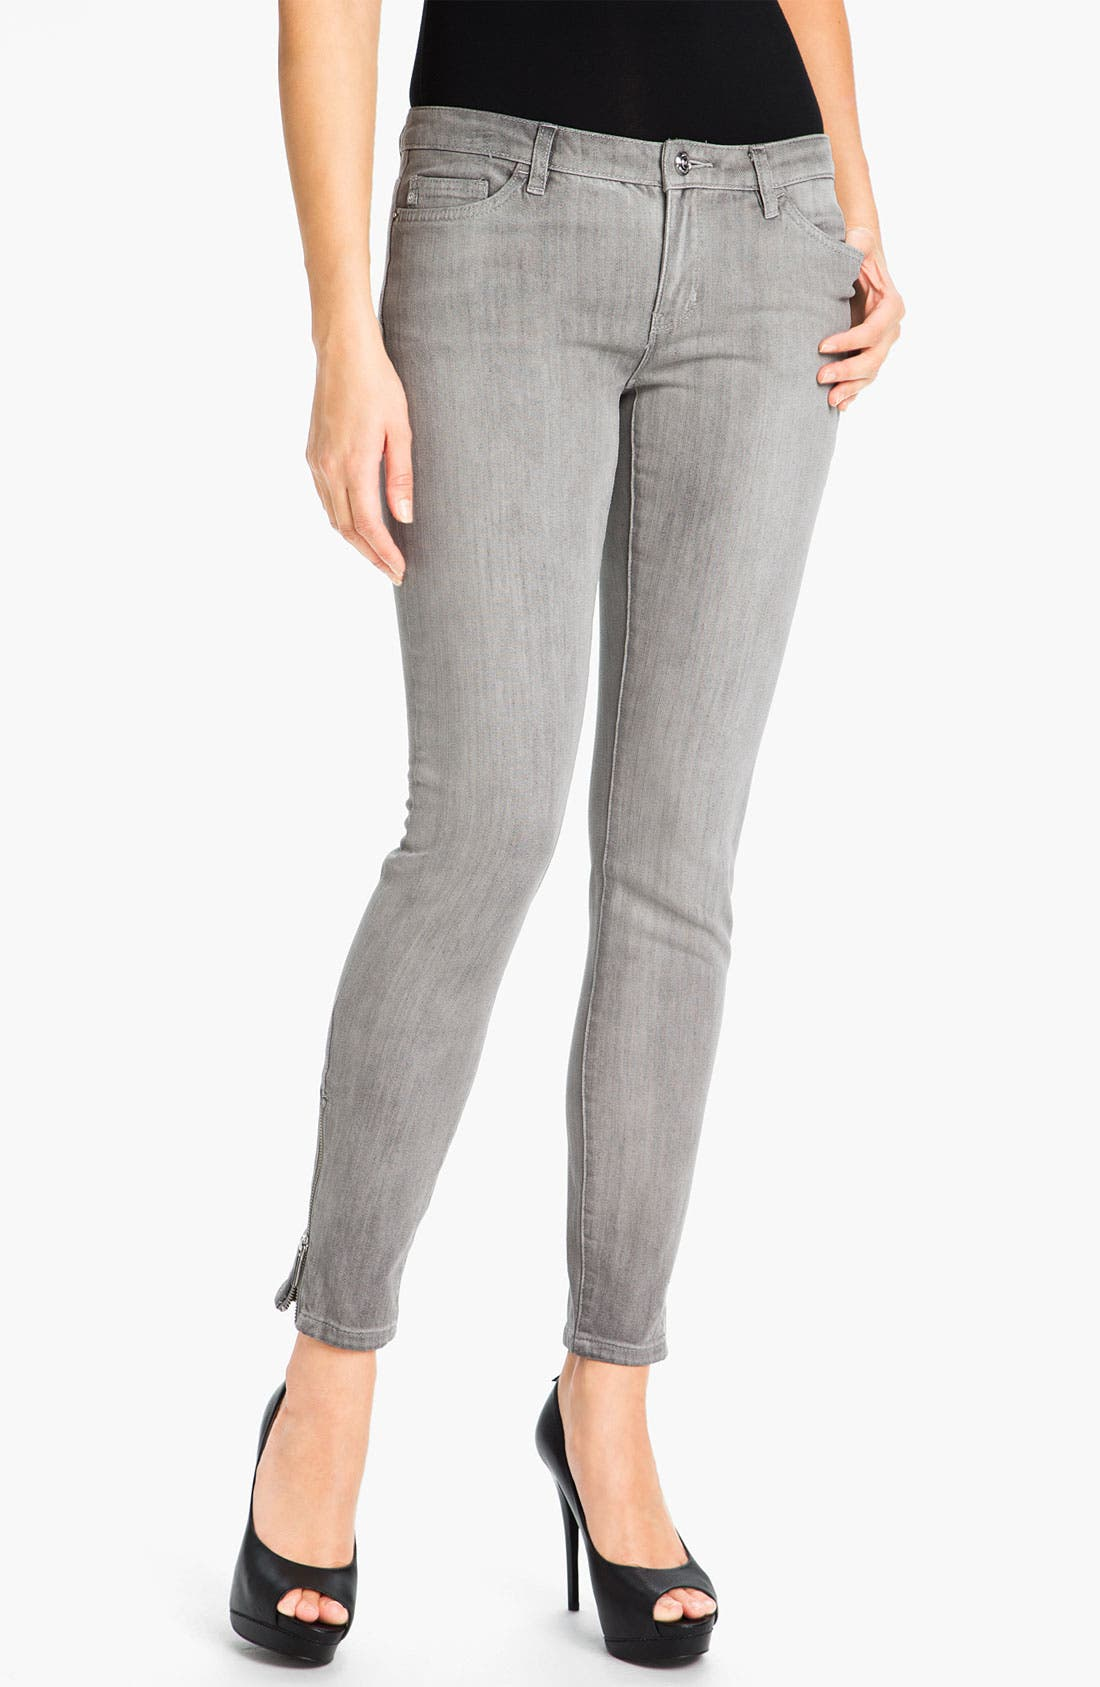 Alternate Image 1 Selected - MICHAEL Michael Kors Skinny Ankle Zip Jeans